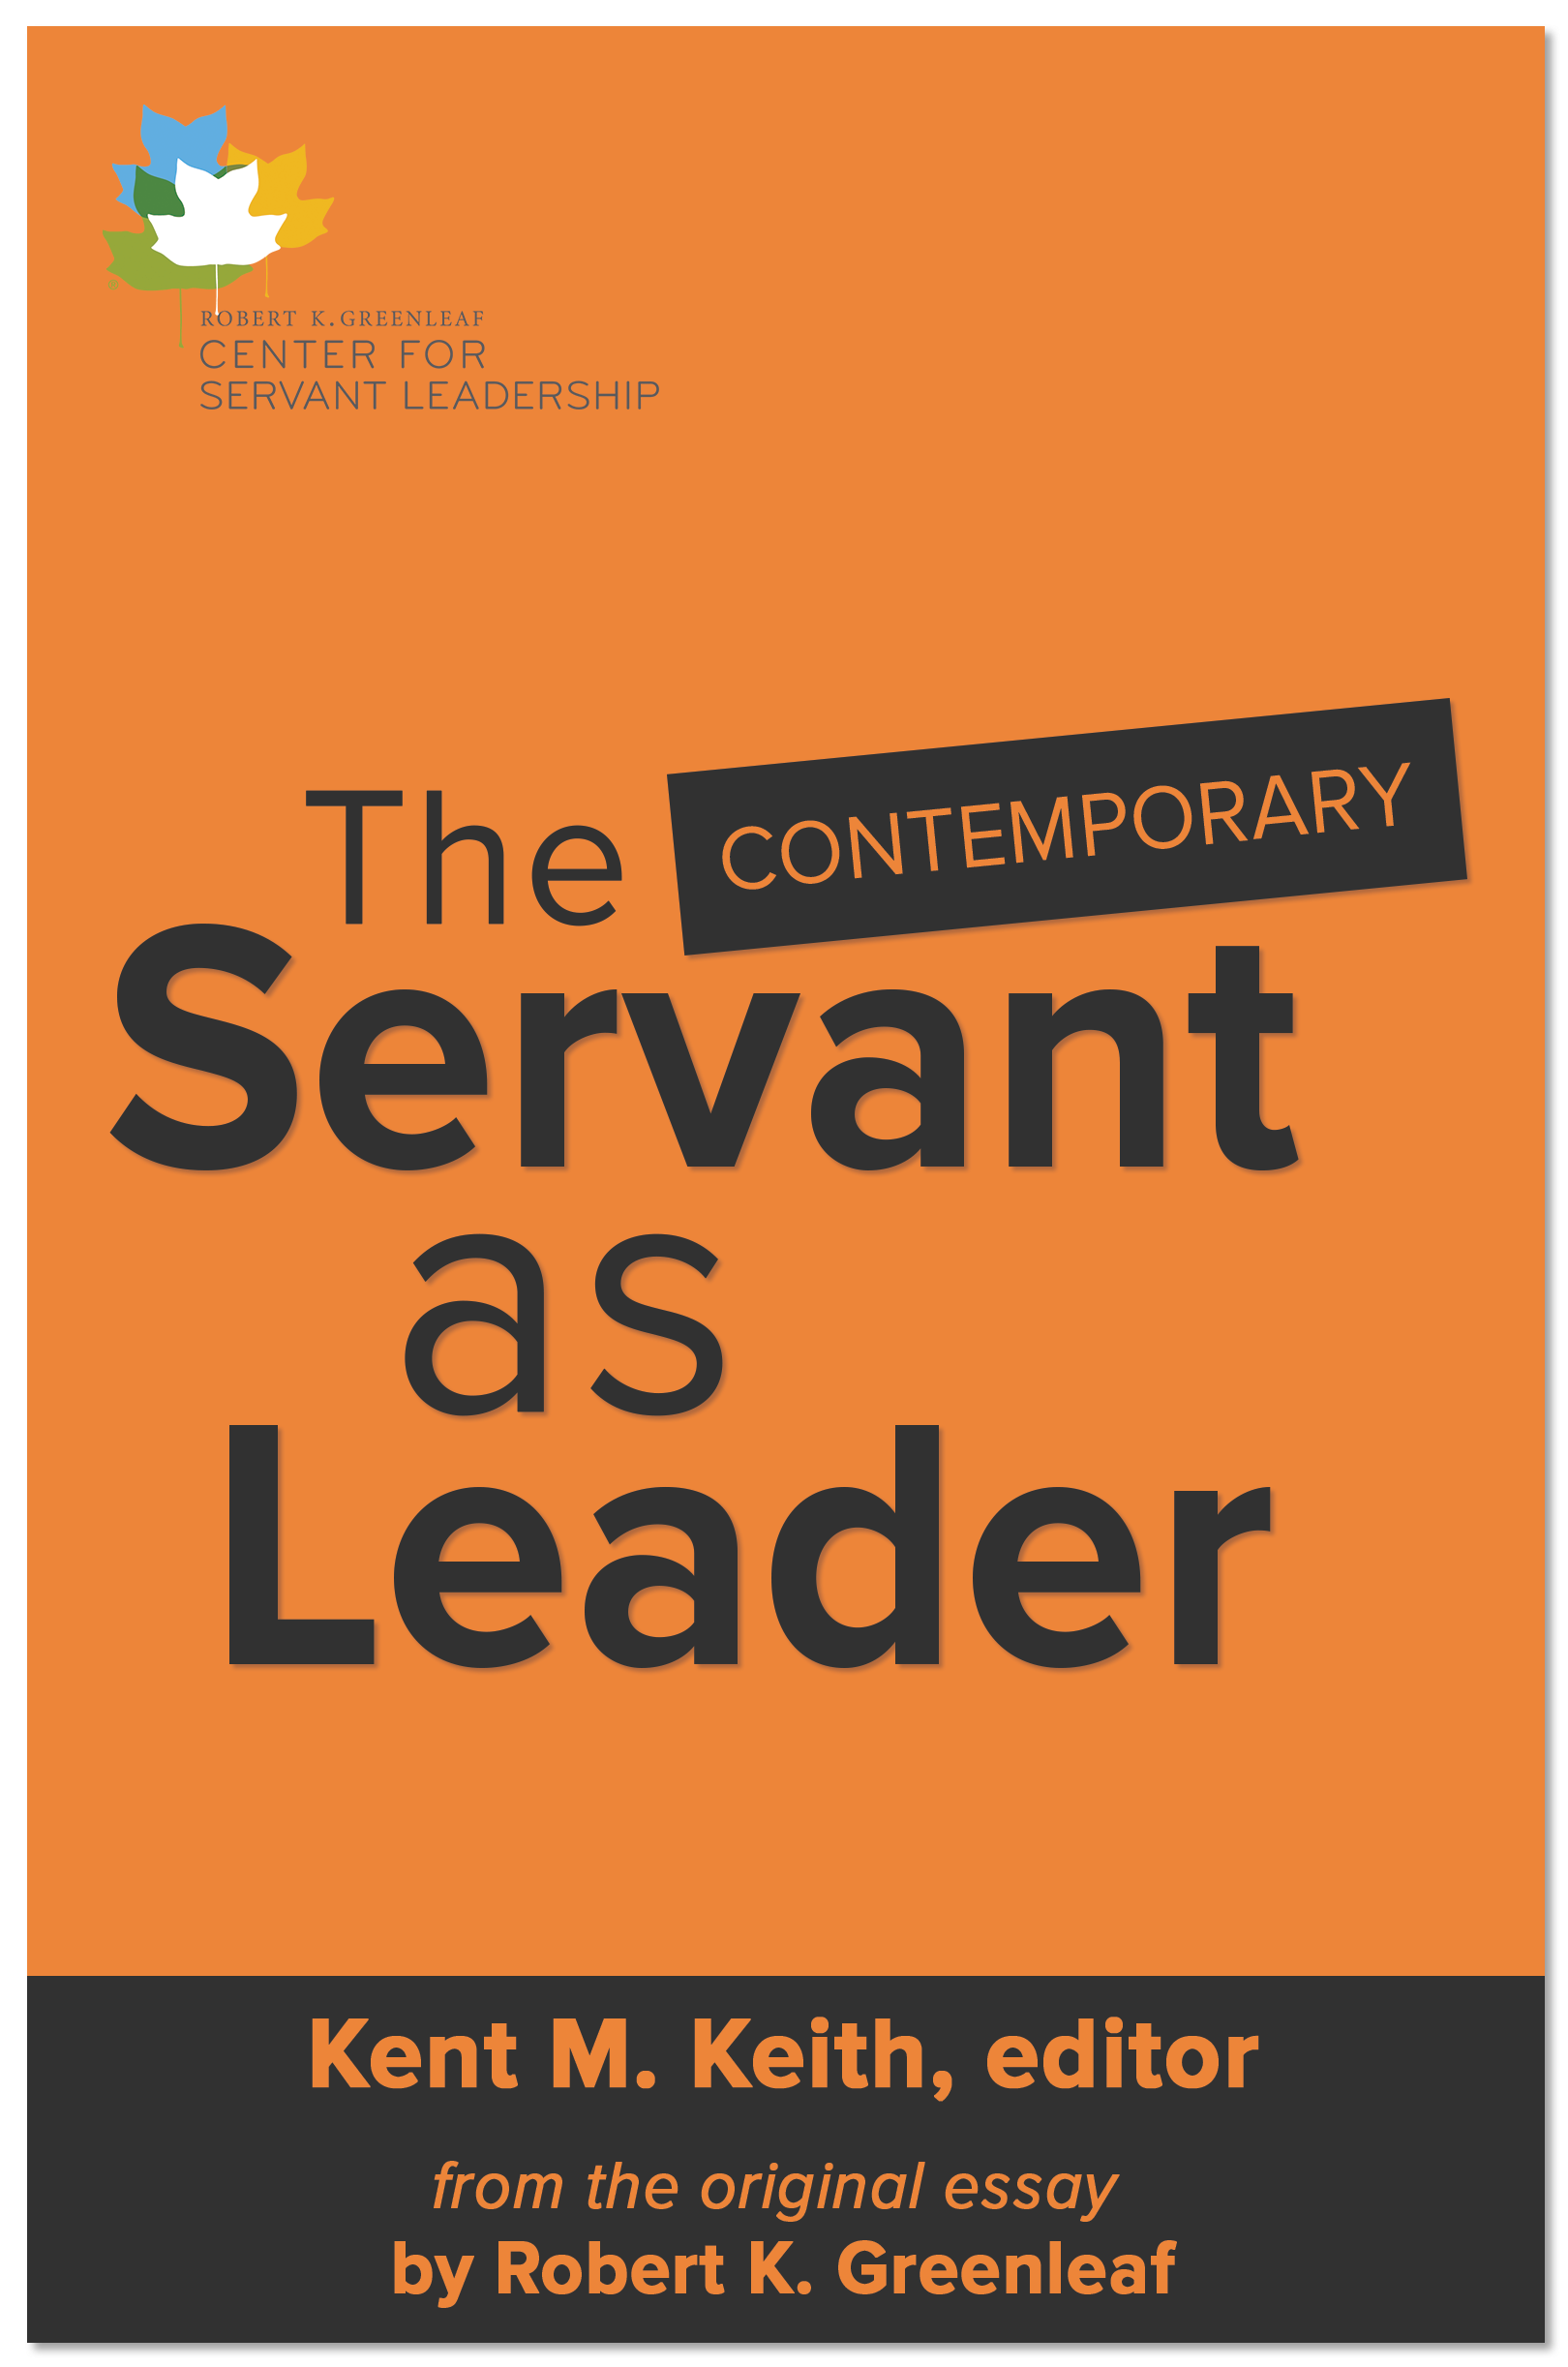 The Contemporary Servant as Leader E-book